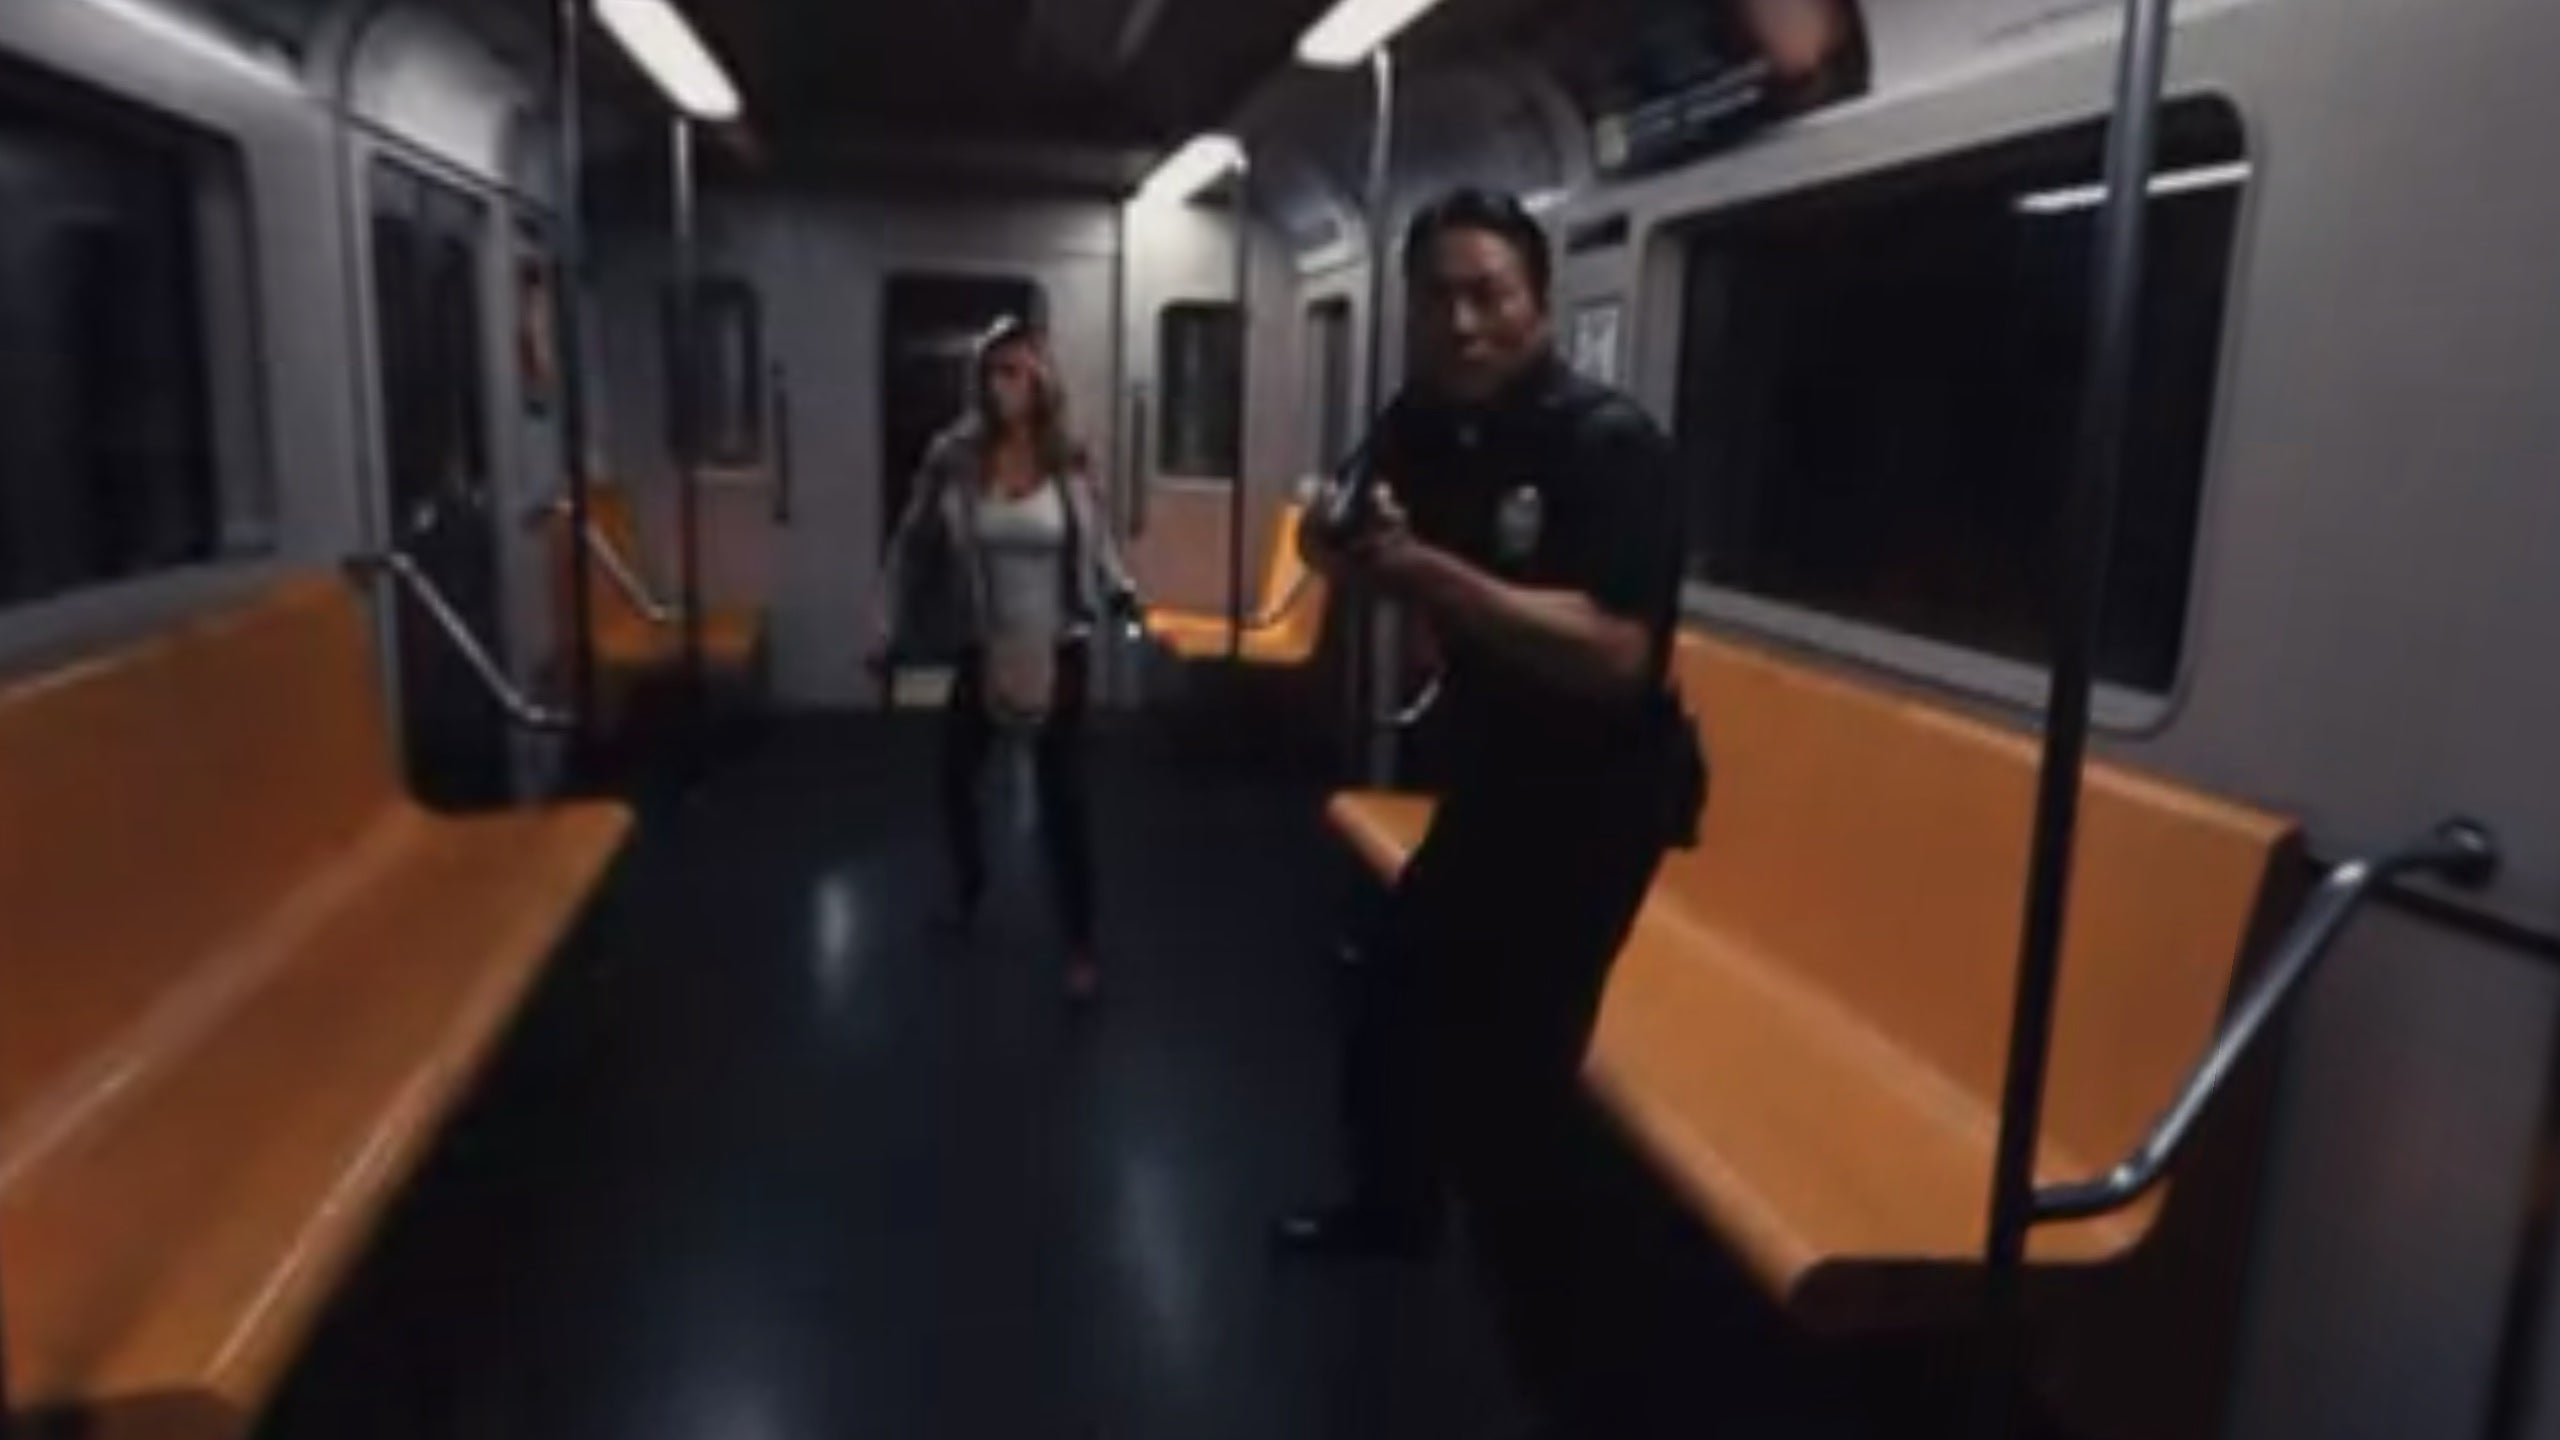 Google's Immersive 360 Action Flick Is So Realistic It's Not Believable